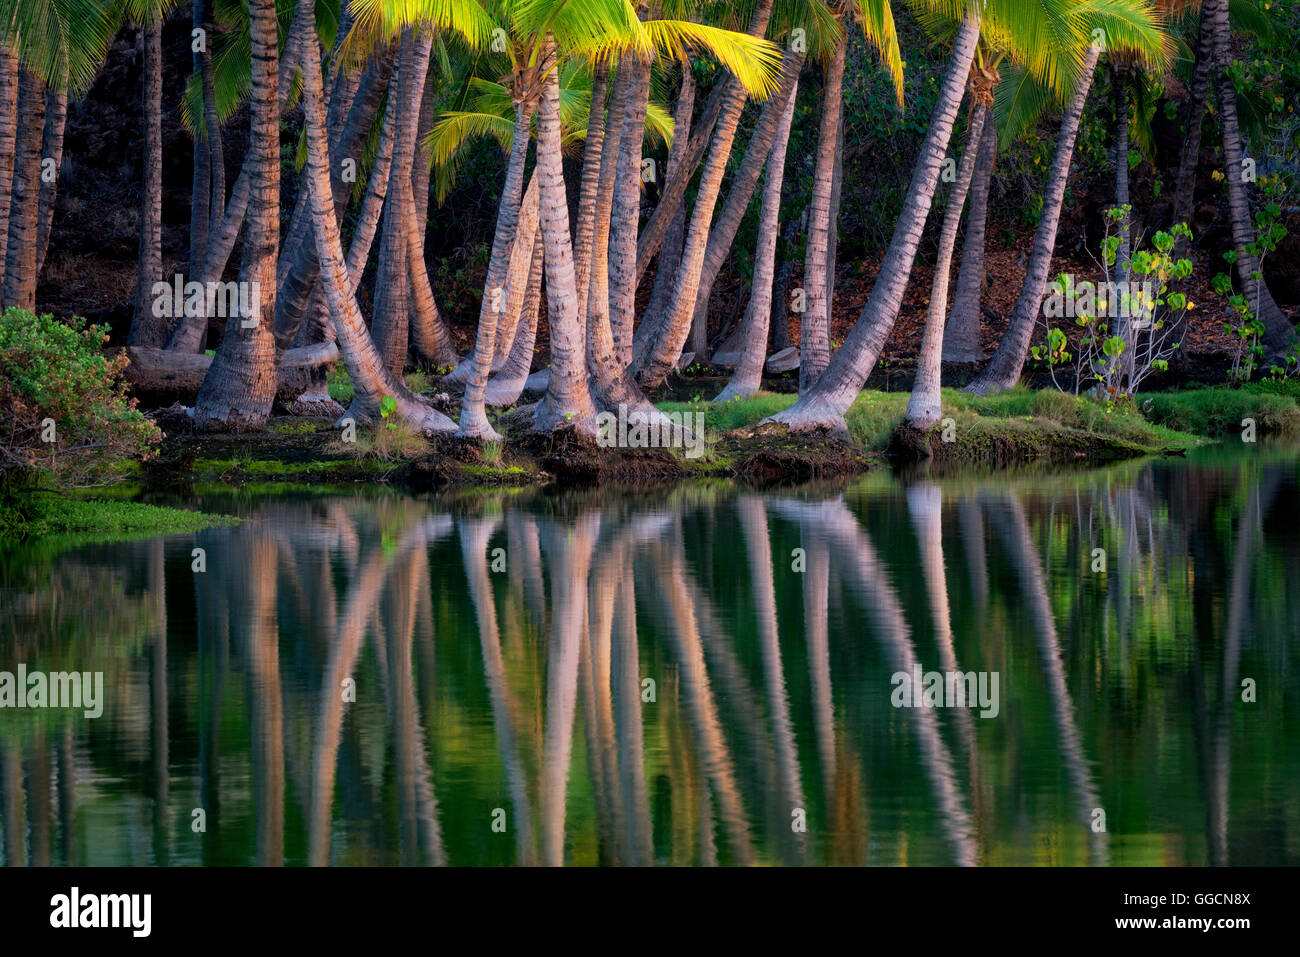 Palm trees reflecting in water of Lahuipua'a and Kaaiopio Ponds. Hawaii Island - Stock Image